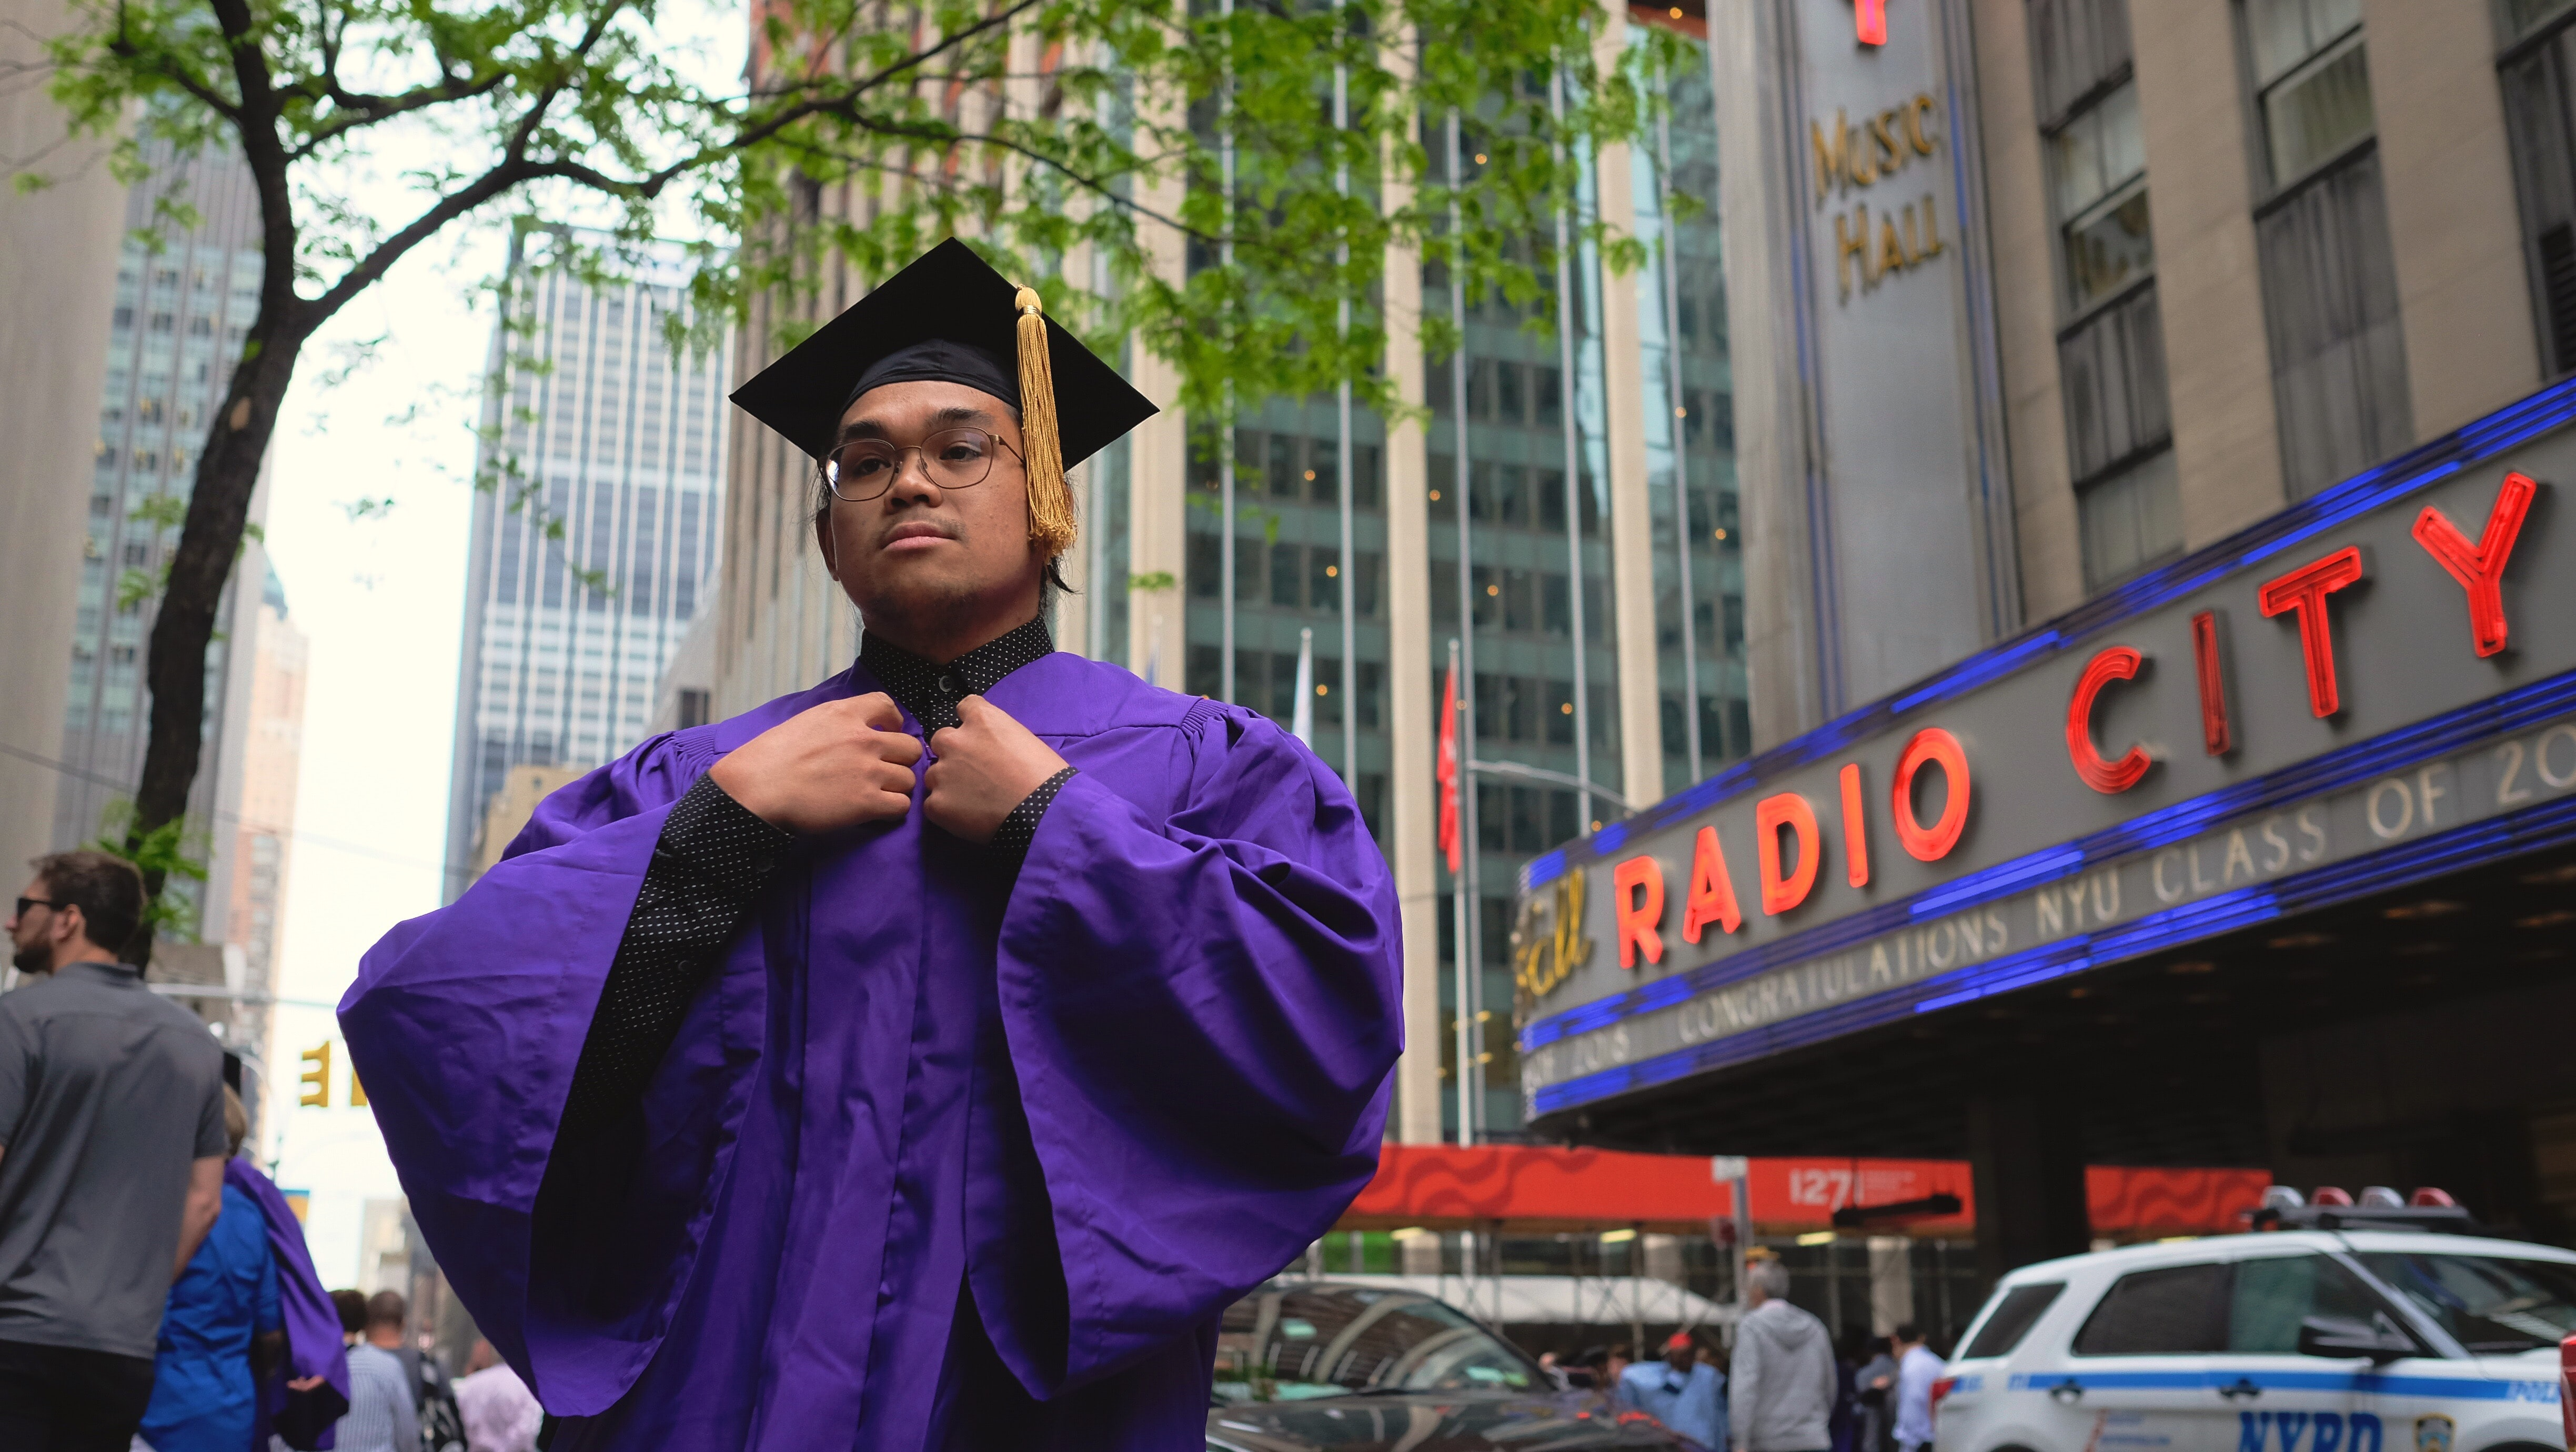 man wearing purple and black educational gown standing near building